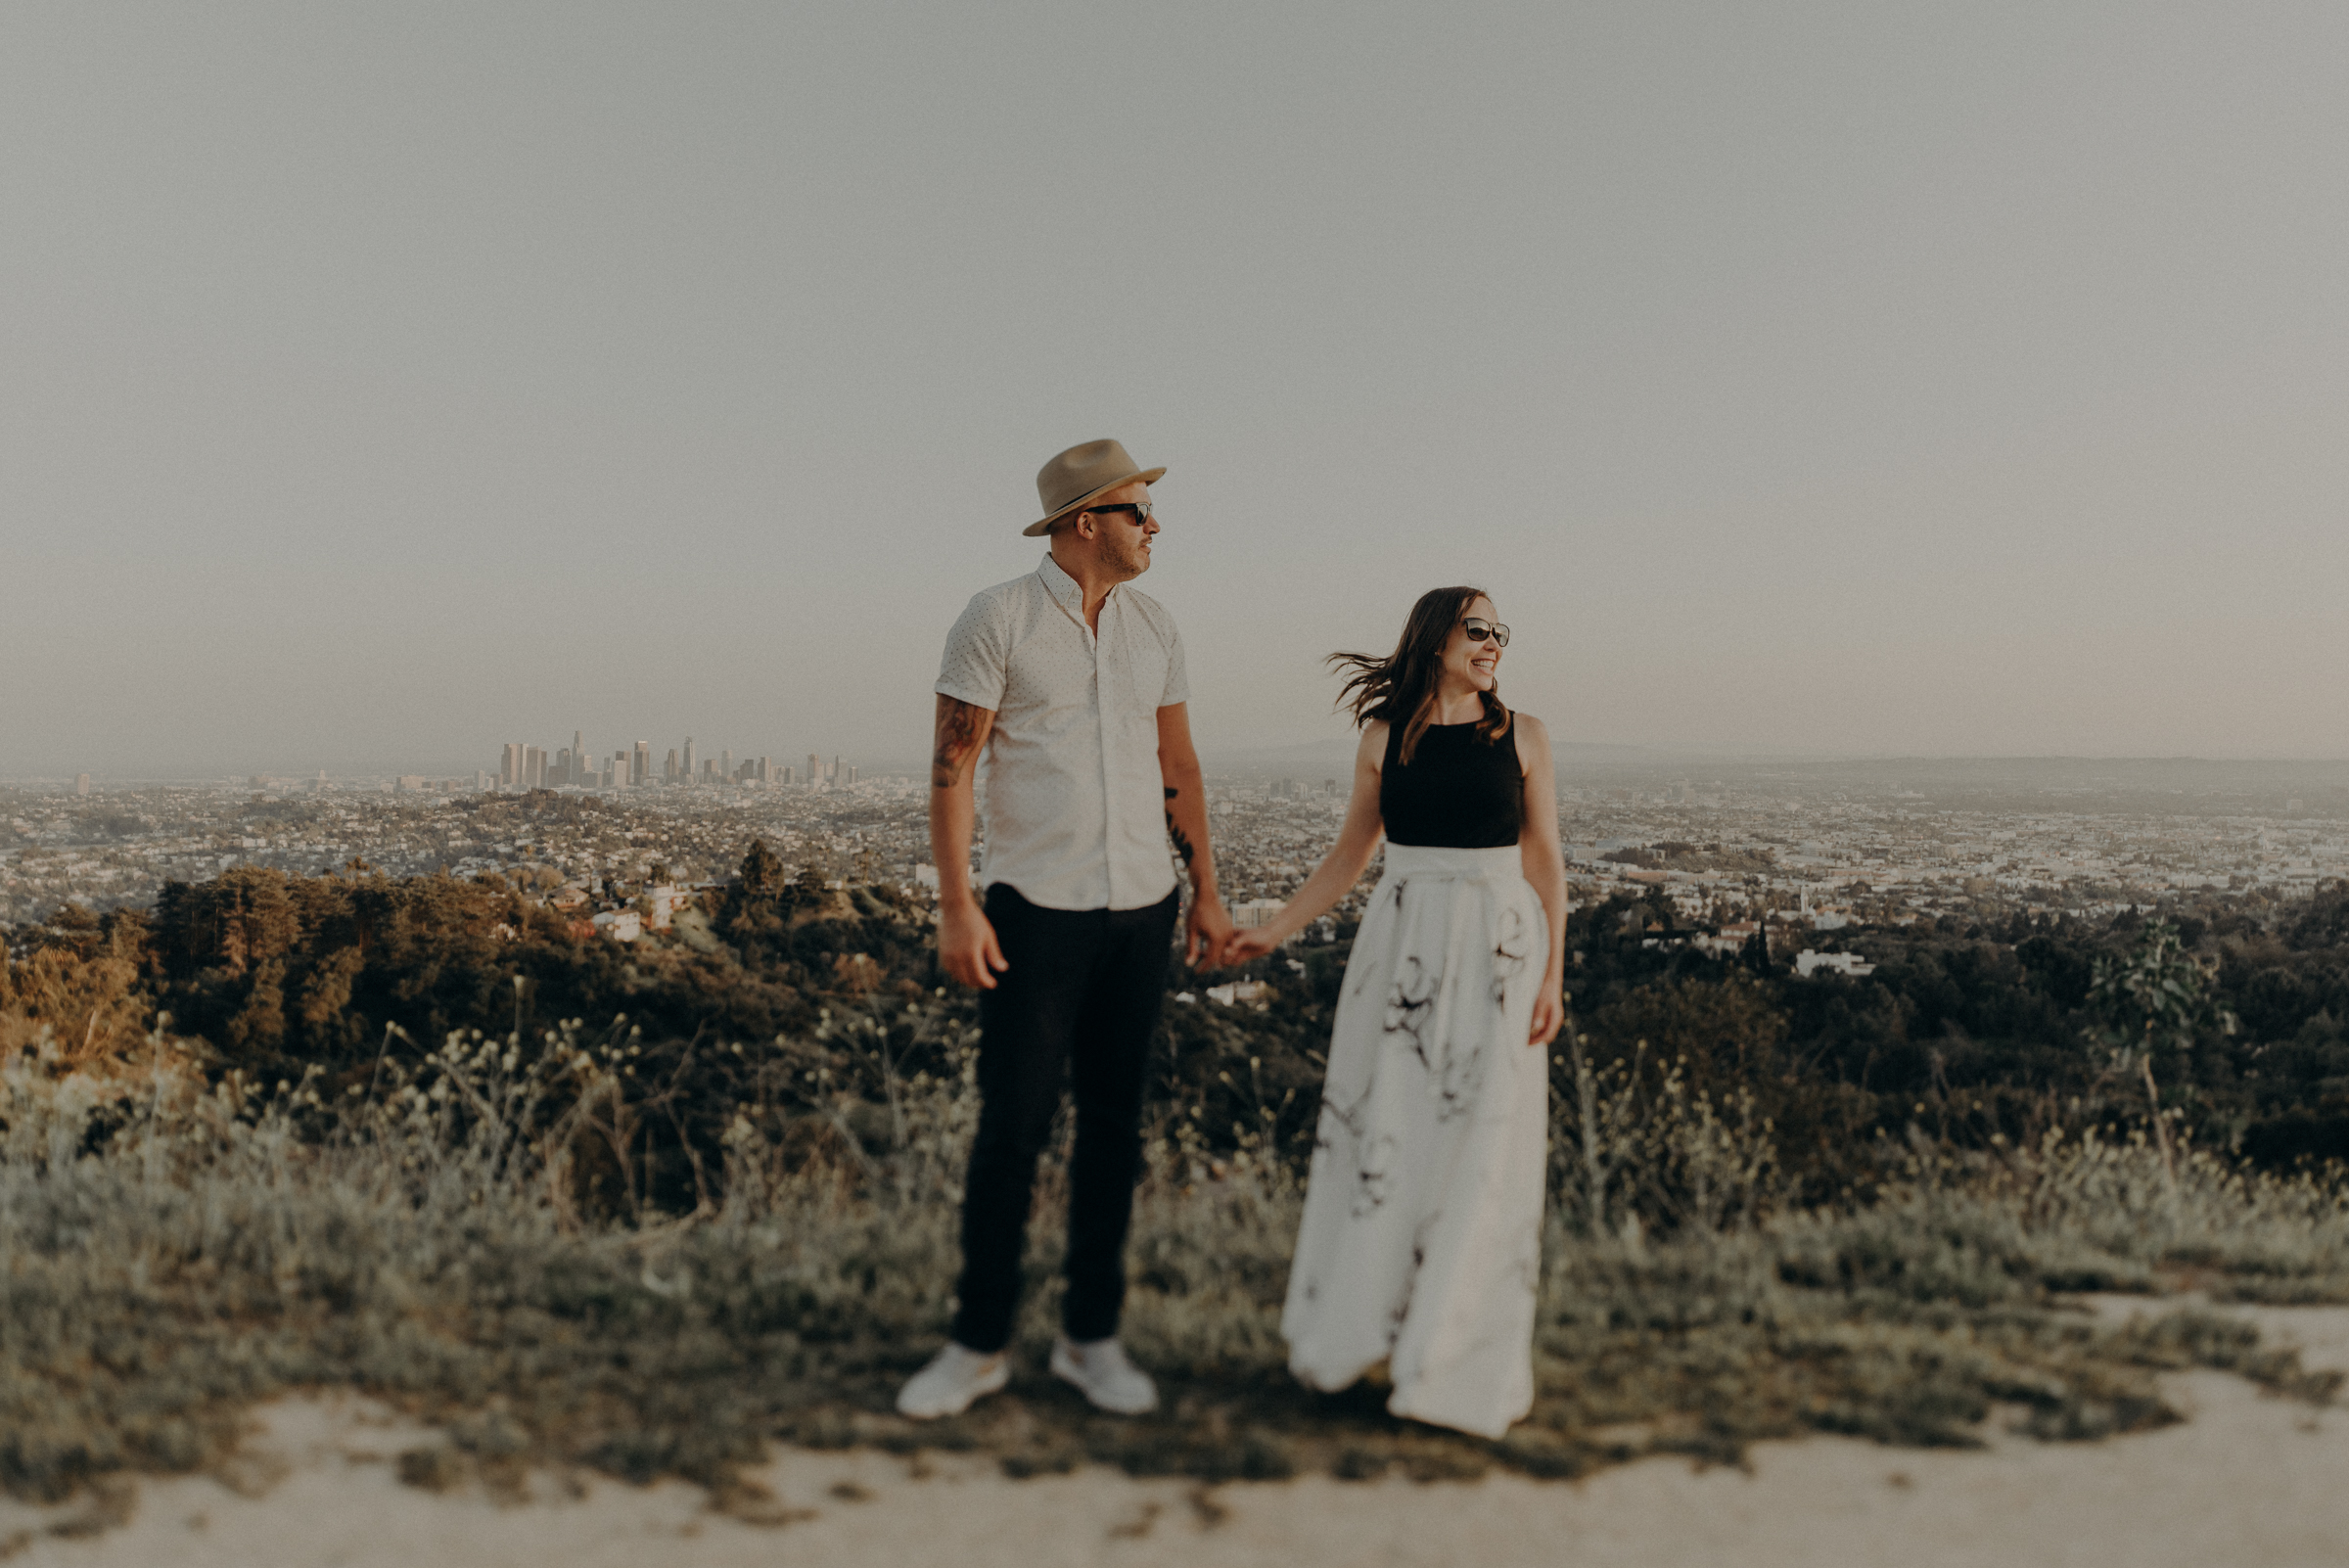 Los Angeles Wedding Photographers - Griffith Park Engagement - IsaiahAndTaylor.com-050.jpg